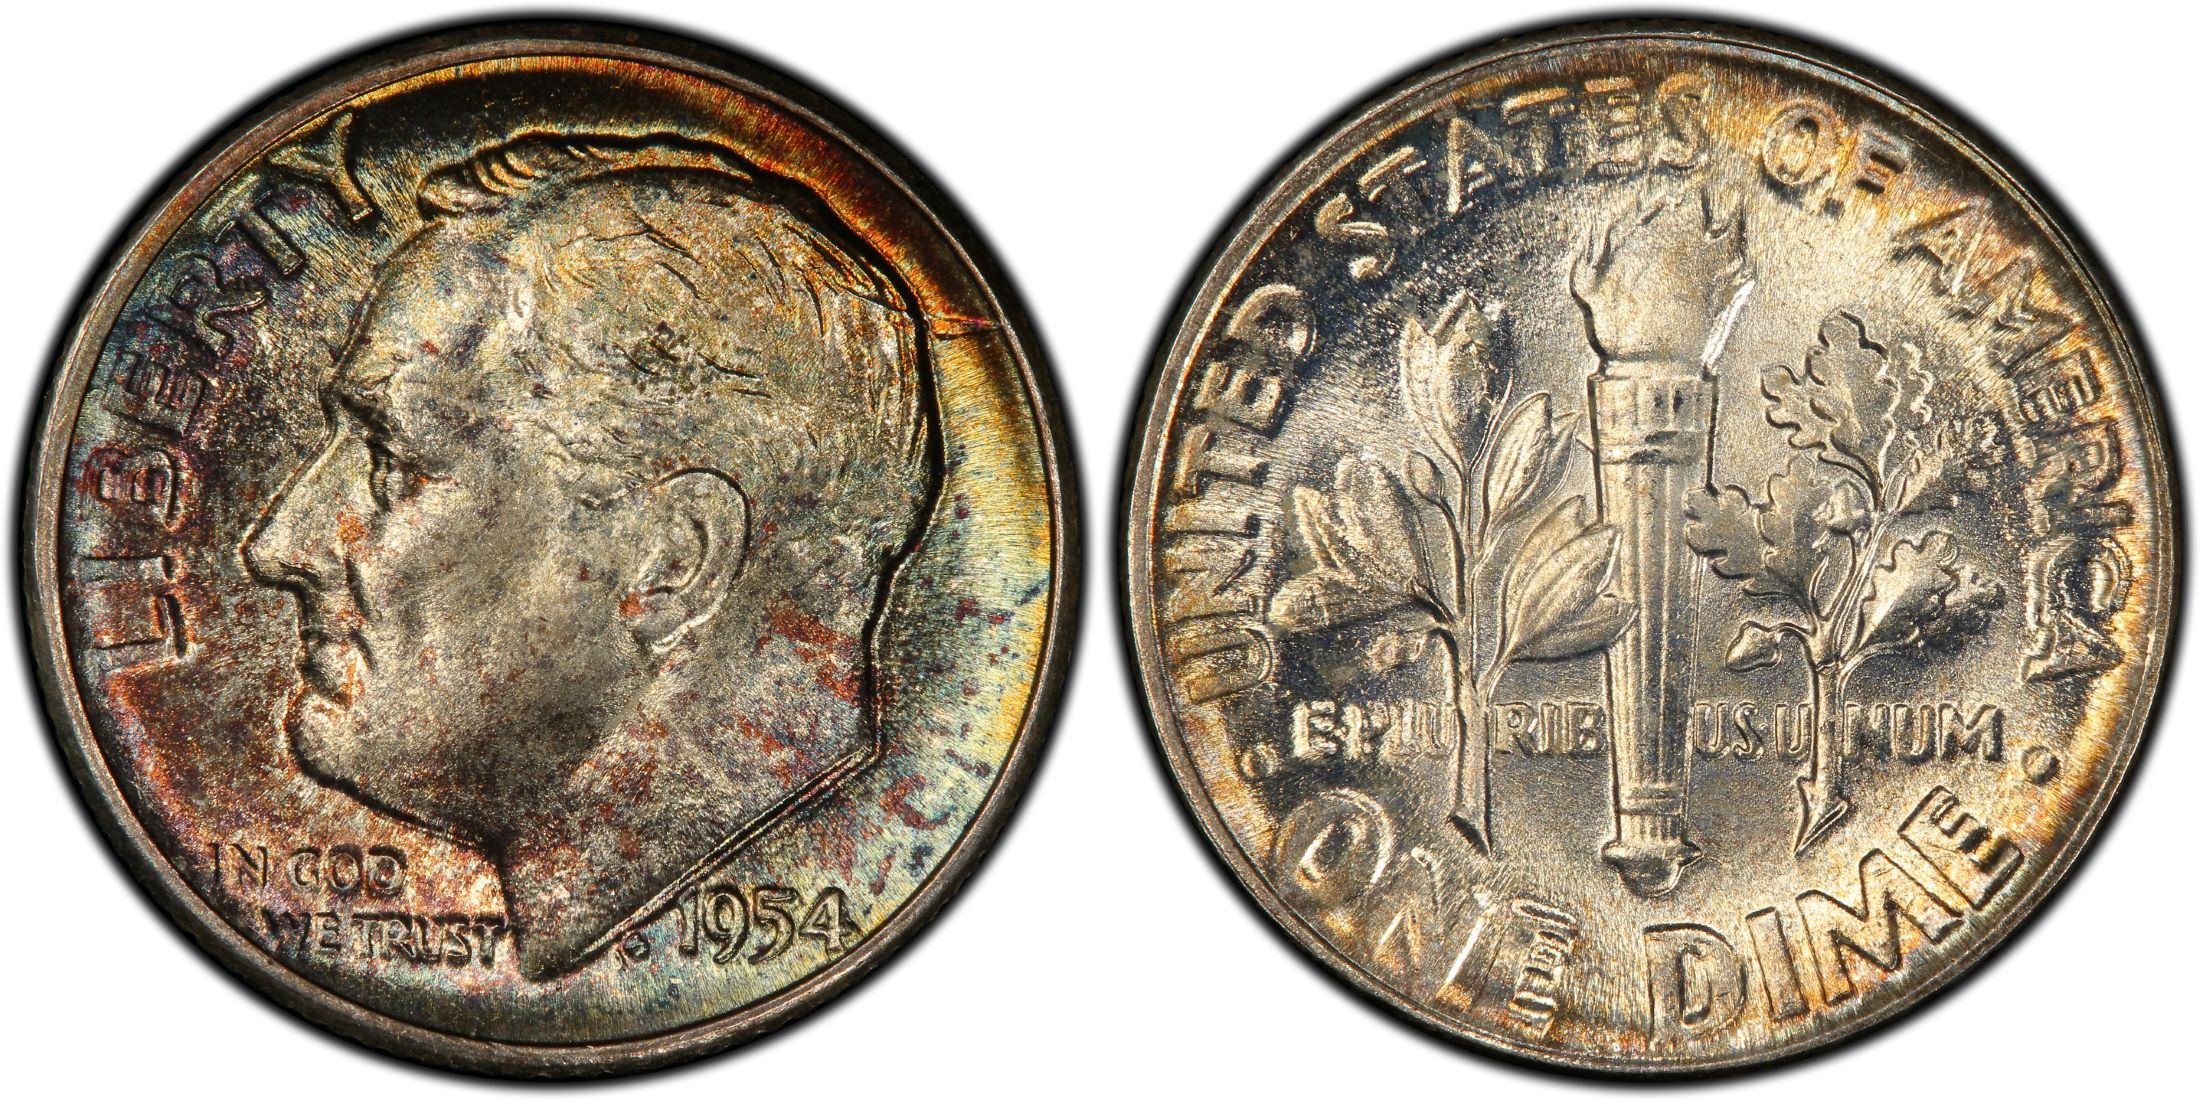 Average Grade of Coin You Will Receive is Photographed 1954-d Roosevelt  Dime